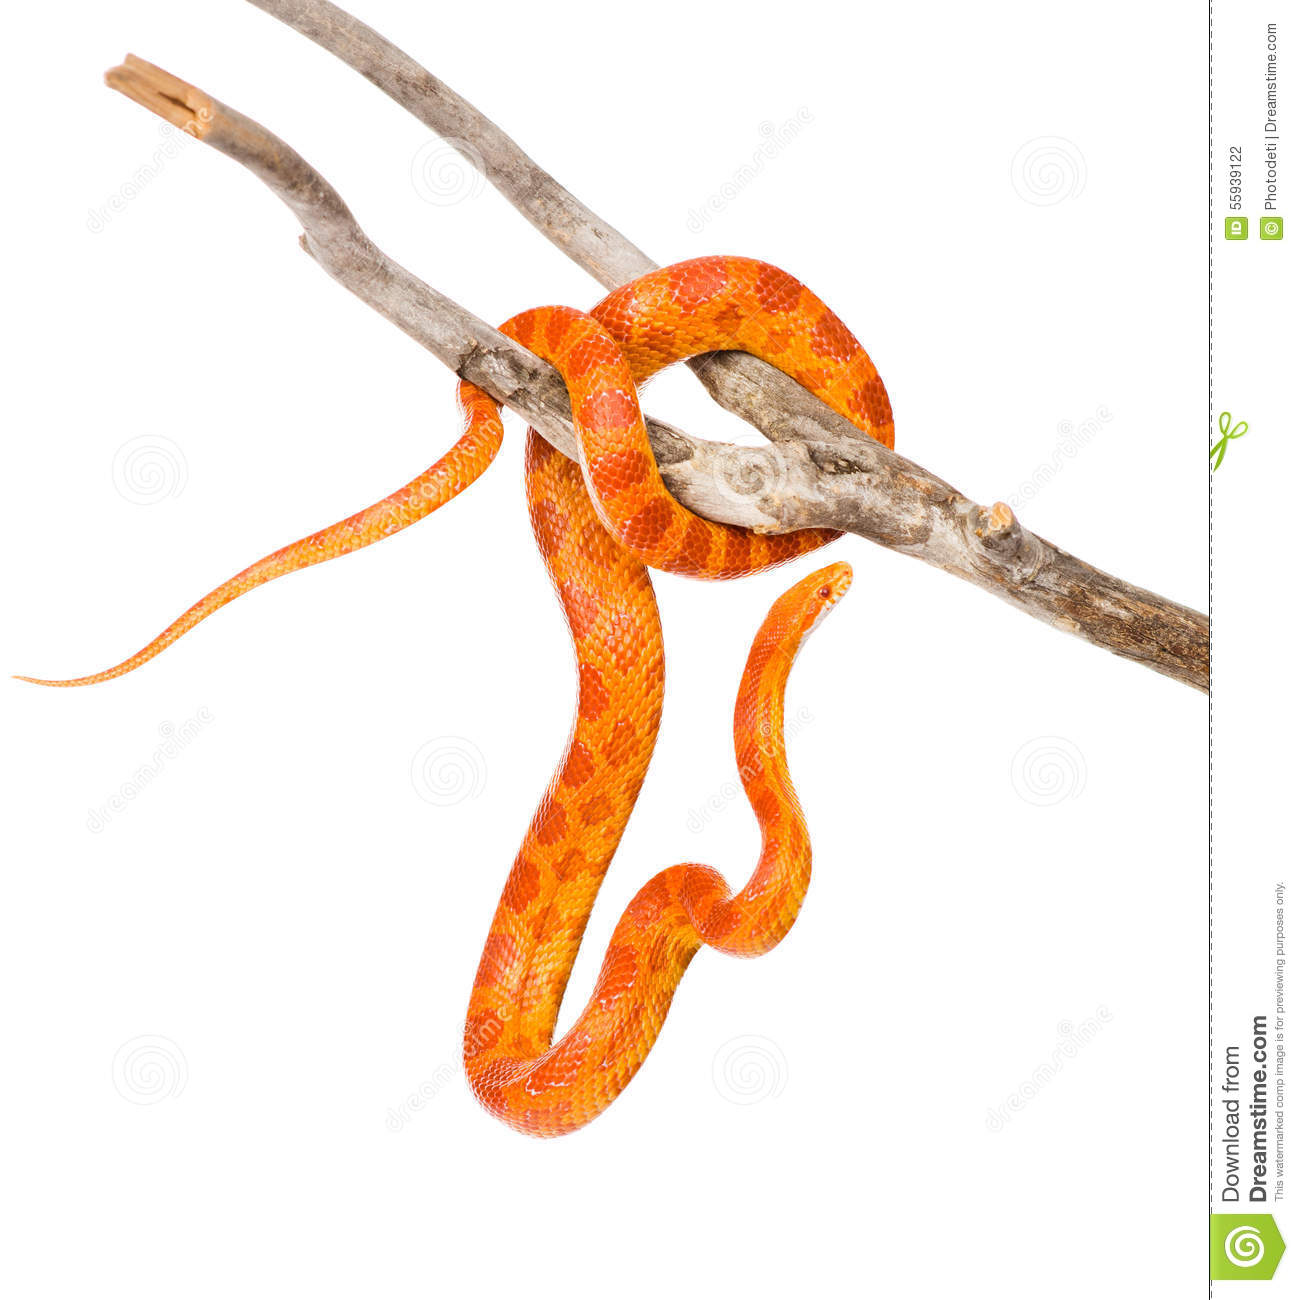 Corn Snake clipart #10, Download drawings